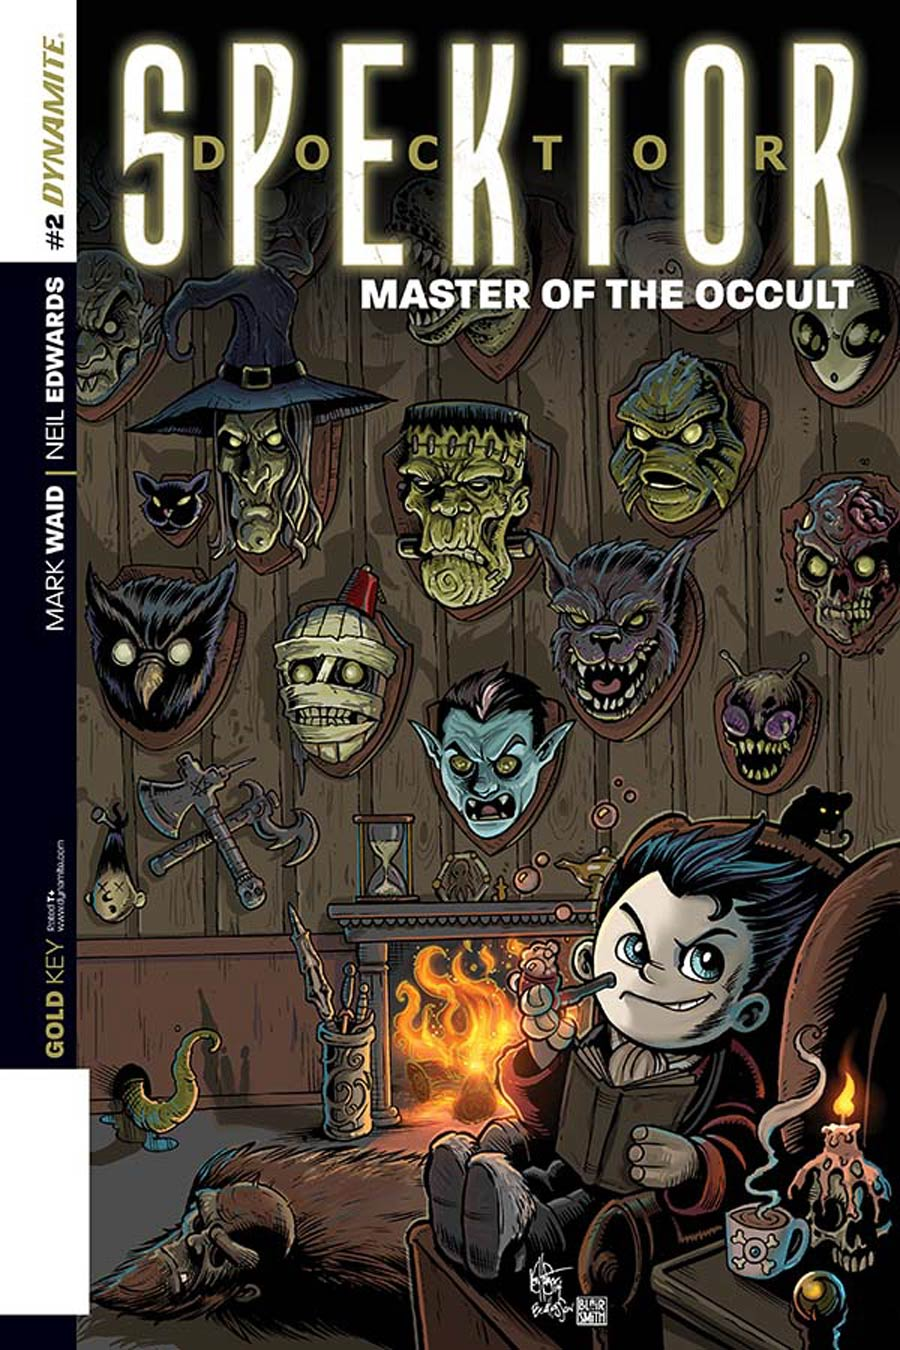 Doctor Spektor Master Of The Occult #2 Cover E Incentive Ken Haeser Lil Spektor Master Of The Occult Variant Cover